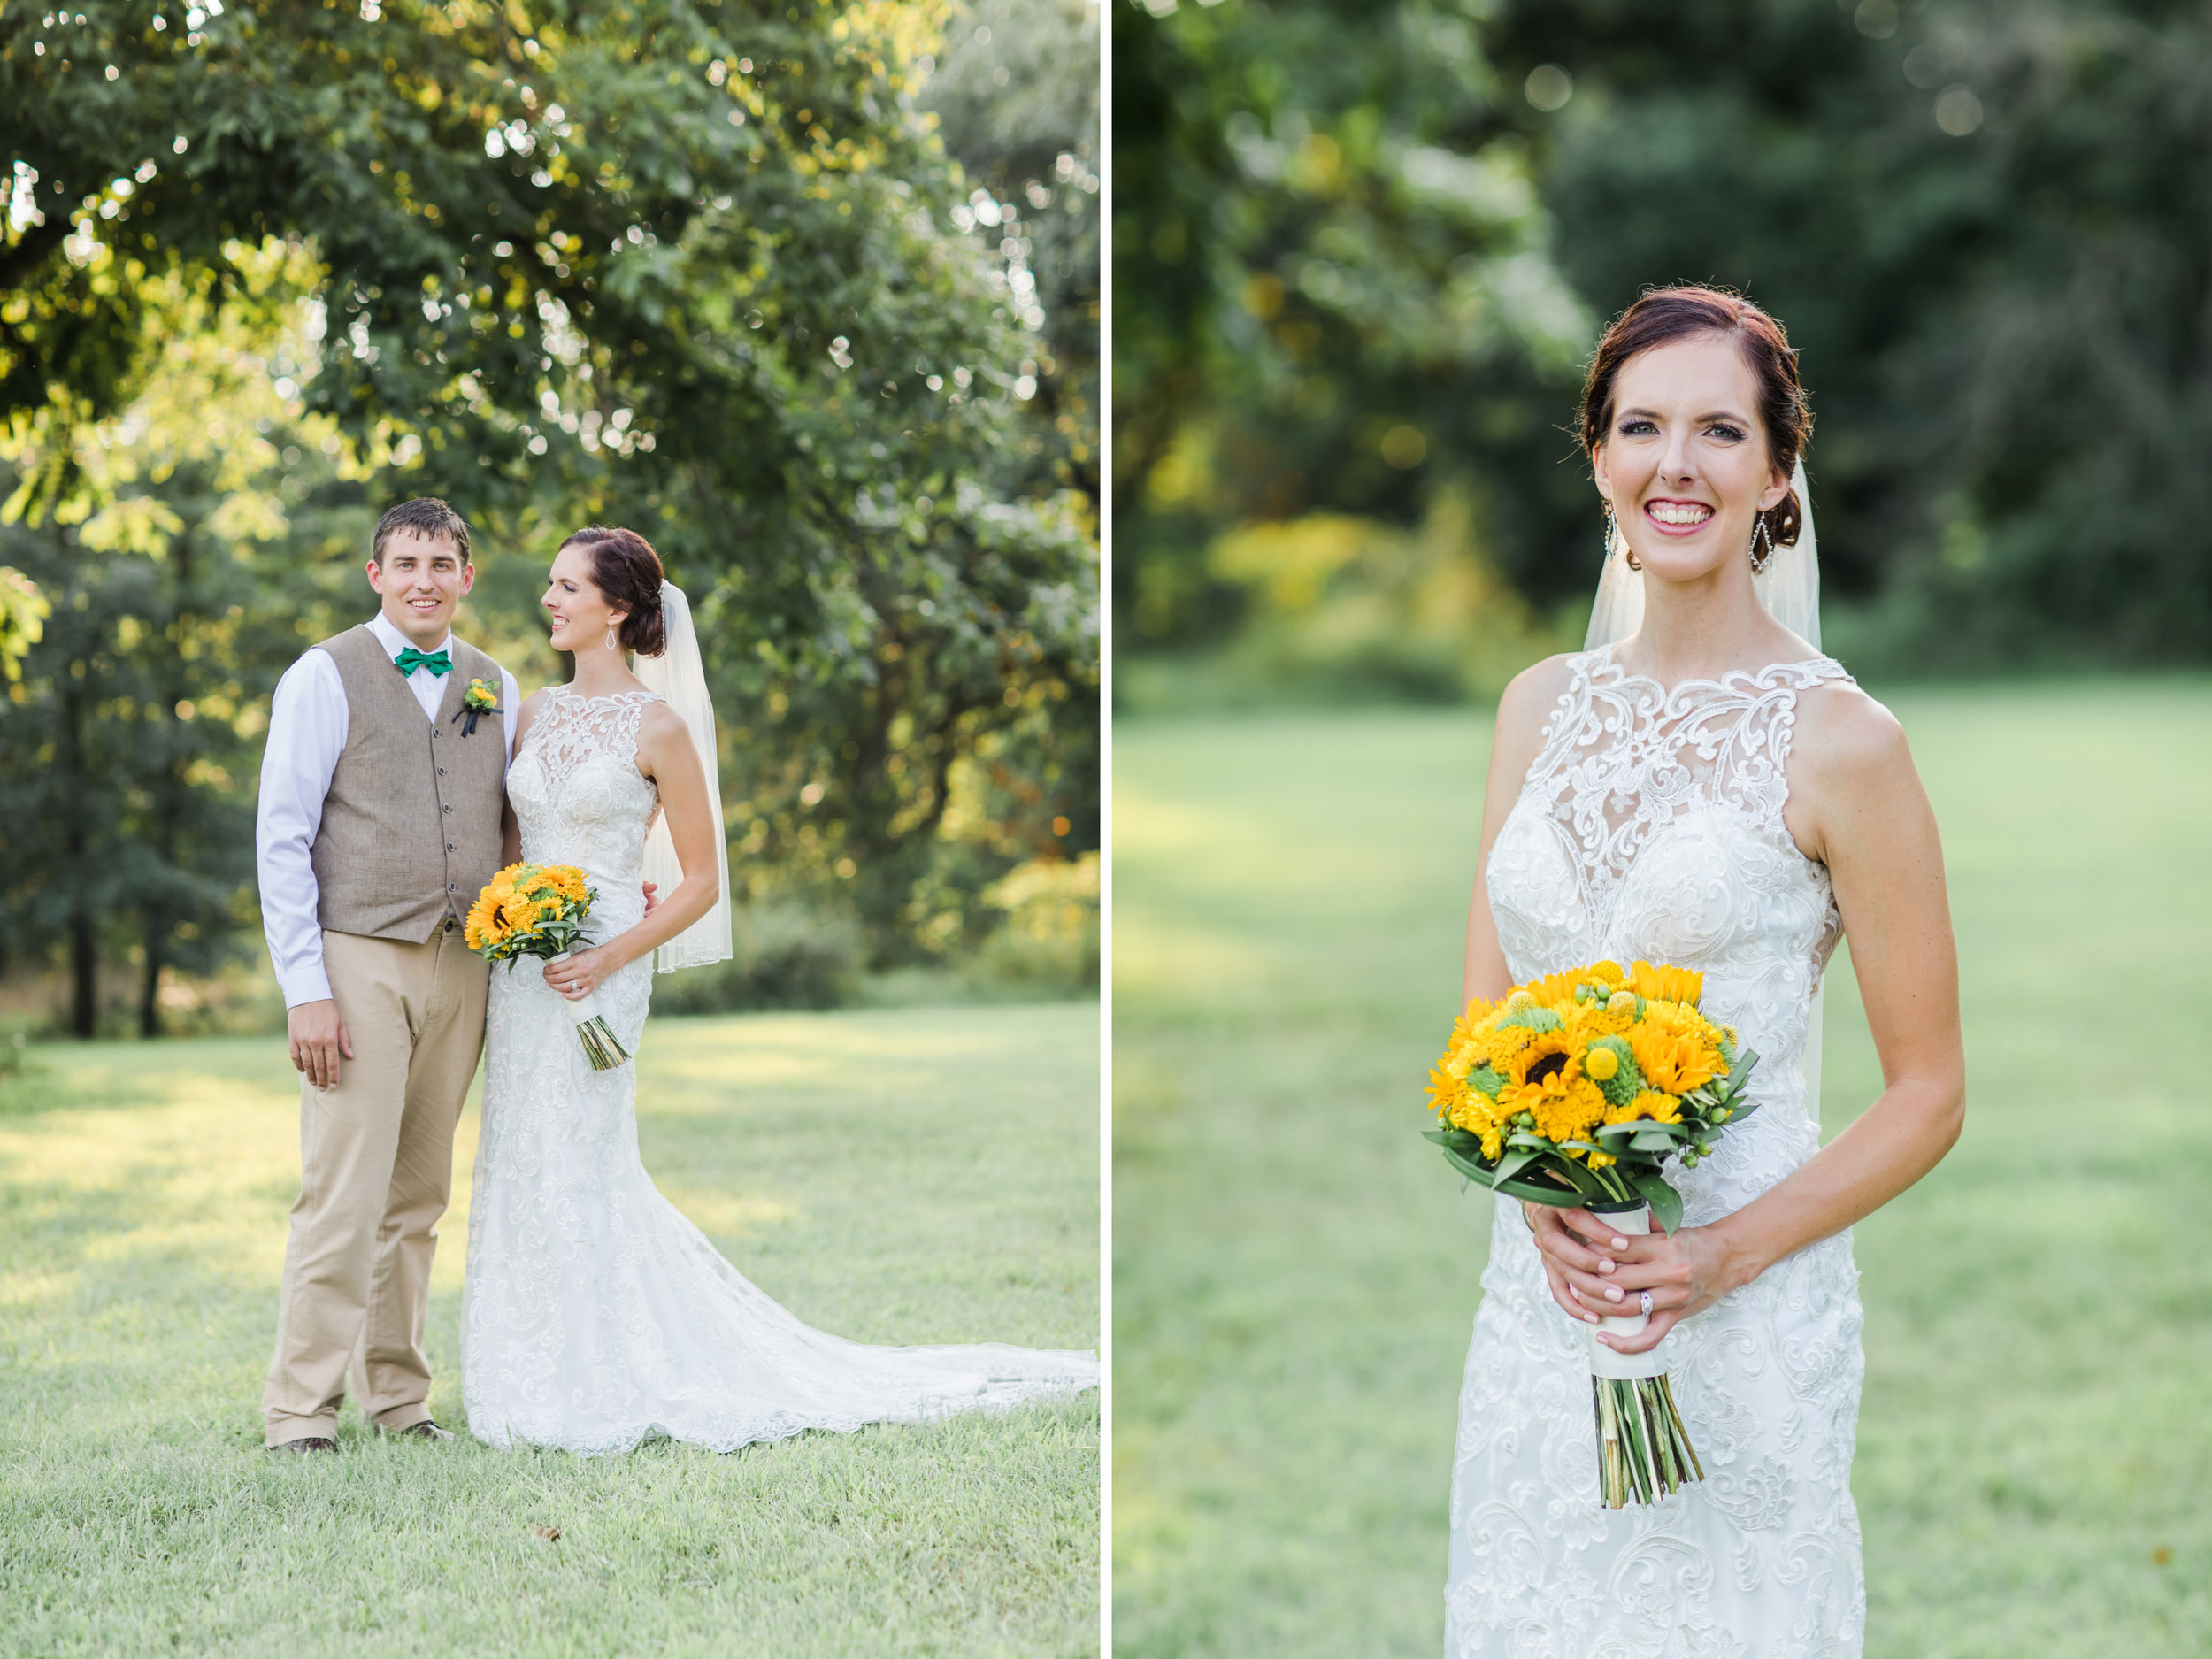 Northwest Arkansas Wedding Photographer 27.jpg